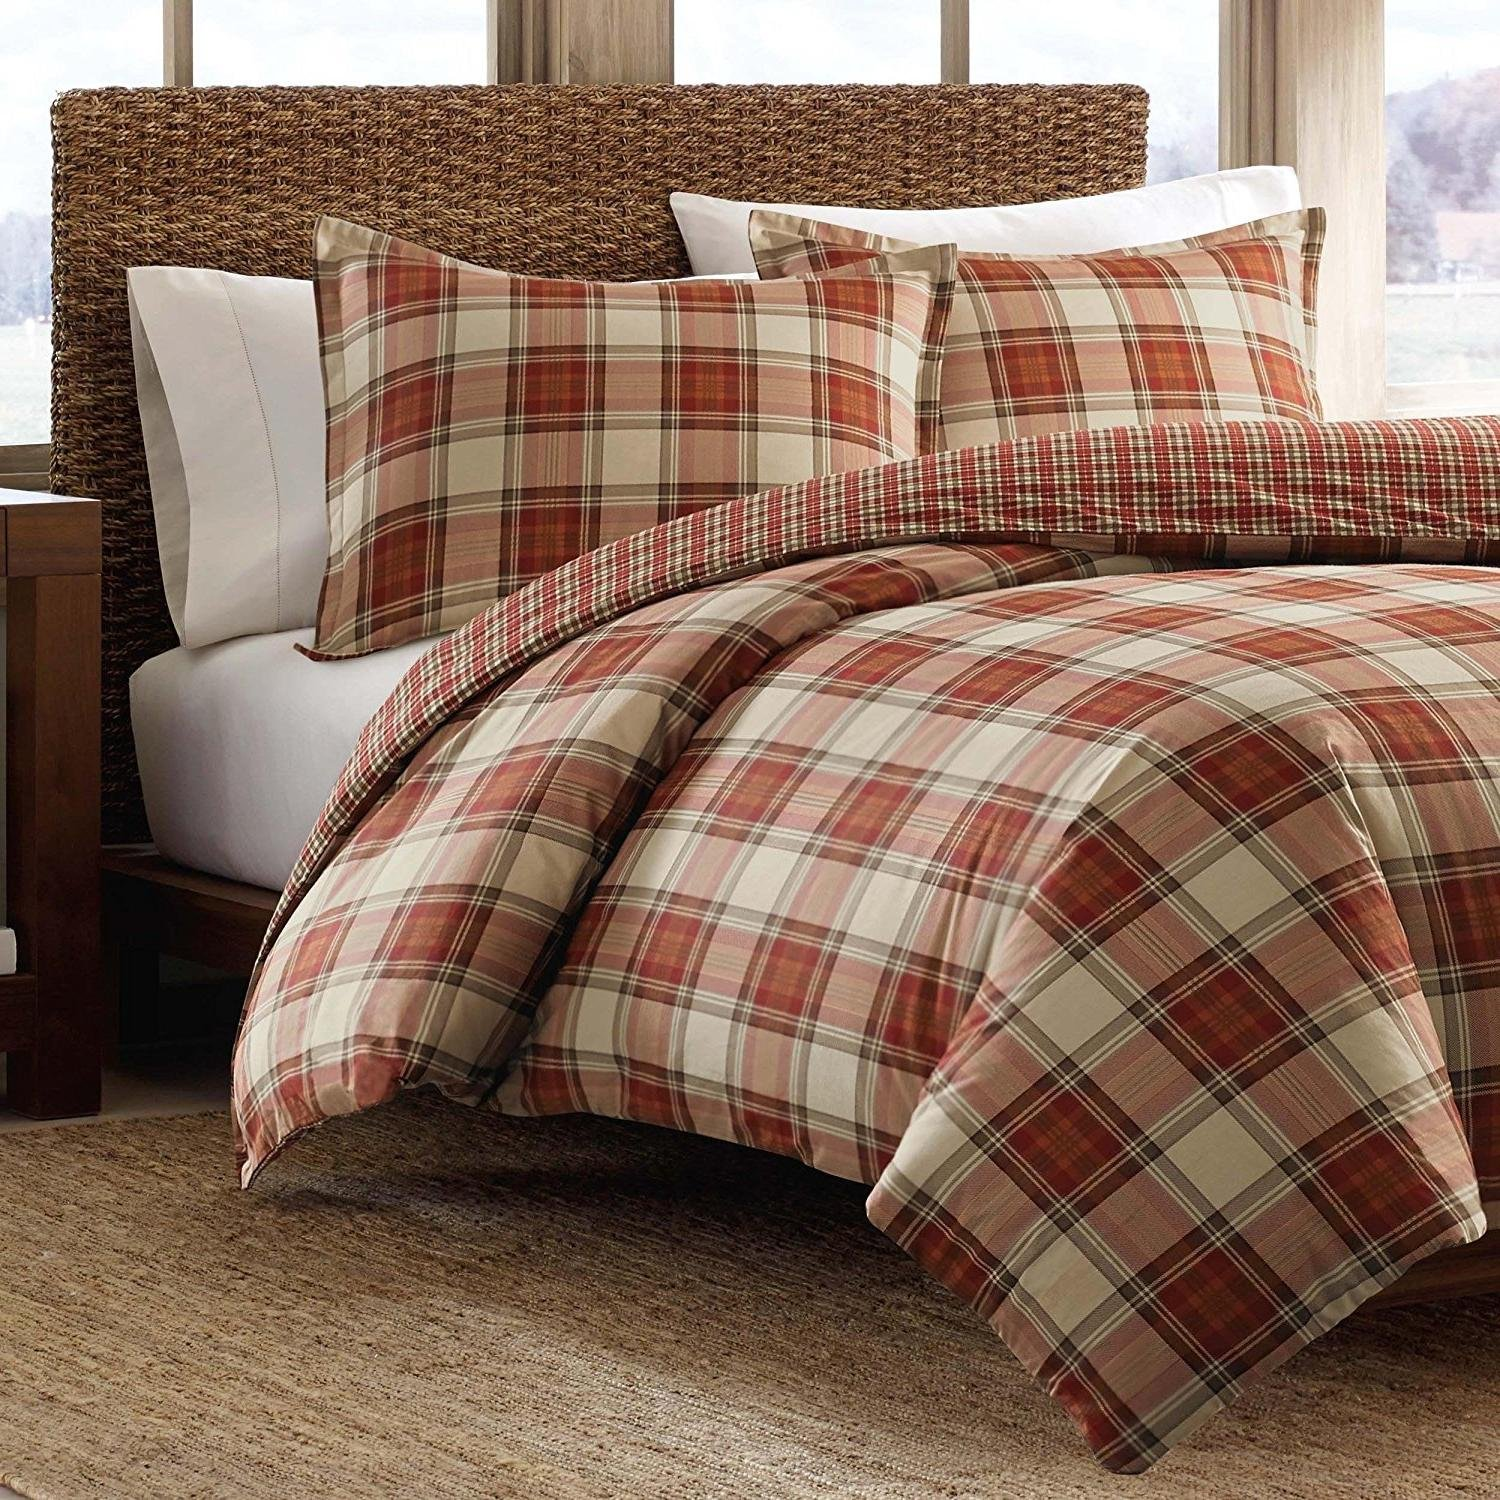 3pc Red Plaid Full Queen Size Duvet Cover Set, Cabin Themed Lodge Country Checkered Bedding Squared Tartan Madras Rustic Lumberjack Pattern Cottage Checked Woods, Cotton